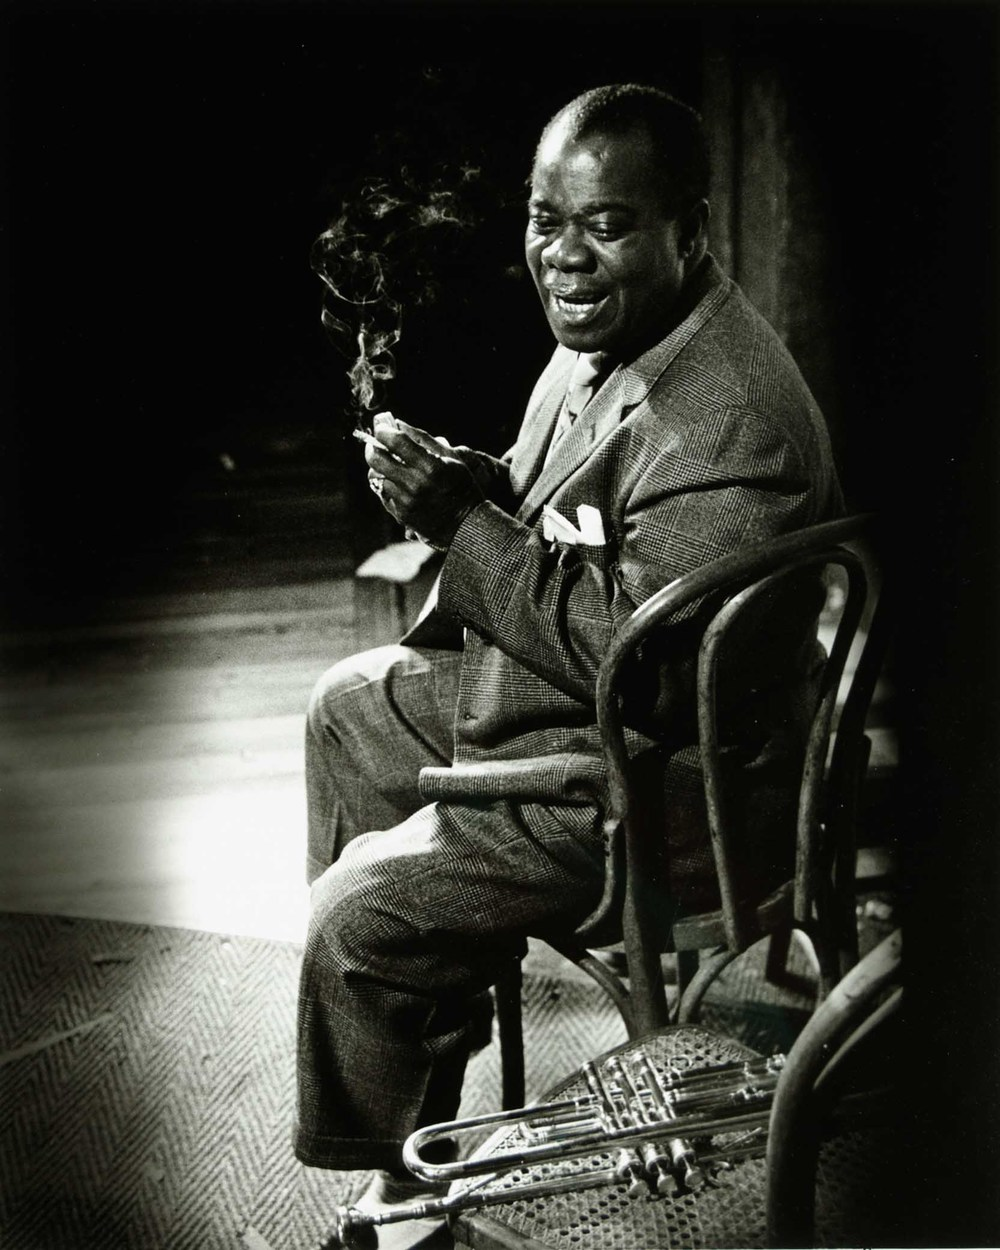 Herman Leonard, Louis Armstrong, Paris, negative date 1960, Silver gelatin print, Gift of Robert and Malena Puterbaugh, Polk Museum of Art Permanent Collection 2009.7  © Herman Leonard Photography, LLC